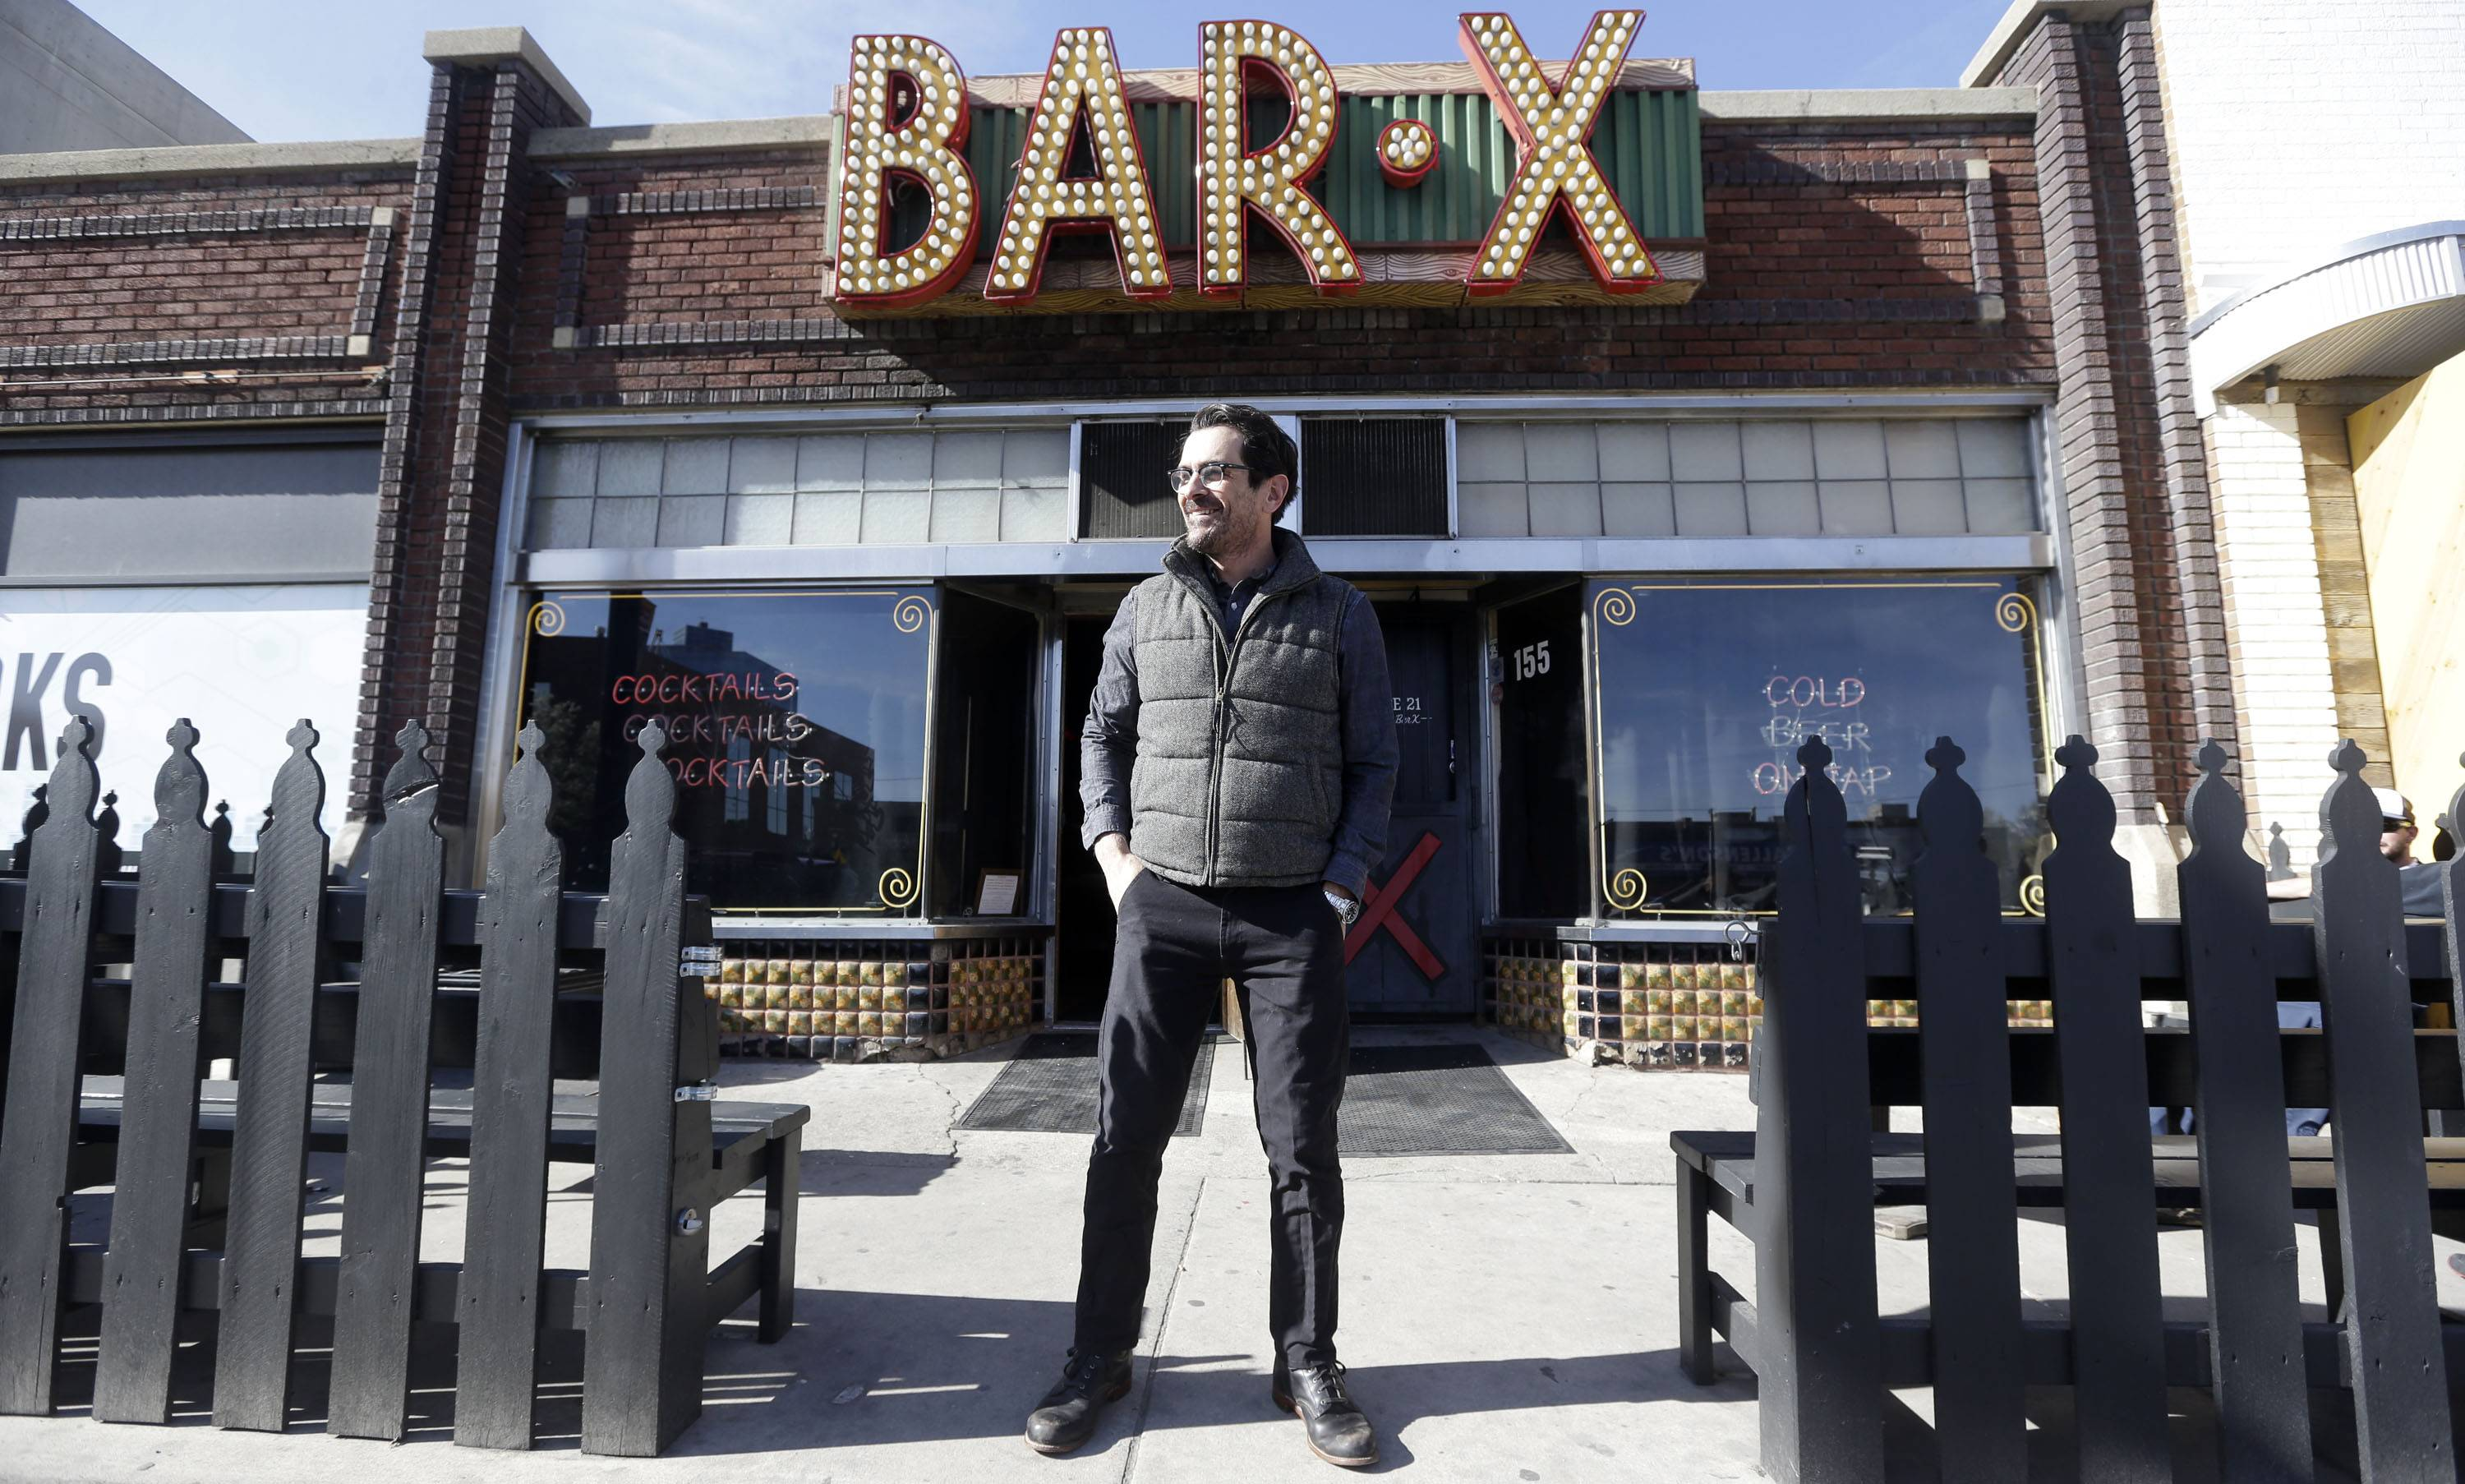 "In this April 16, 2014 photo, actor Ty Burrell, who plays bumbling dad Phil Dunphy on ABC's ""Modern Family,"" stands outside Bar X, the cocktail bar he co-owns, in Salt Lake City. Burrell just opened Beer Bar, a beer garden-like eatery next door to Bar X that serves 150 beers paired up with an array of house-made bratwursts, local breads and Belgian fries. The restaurant sports long tables and benches with high ceilings to evoke that Bavarian beer hall feel."